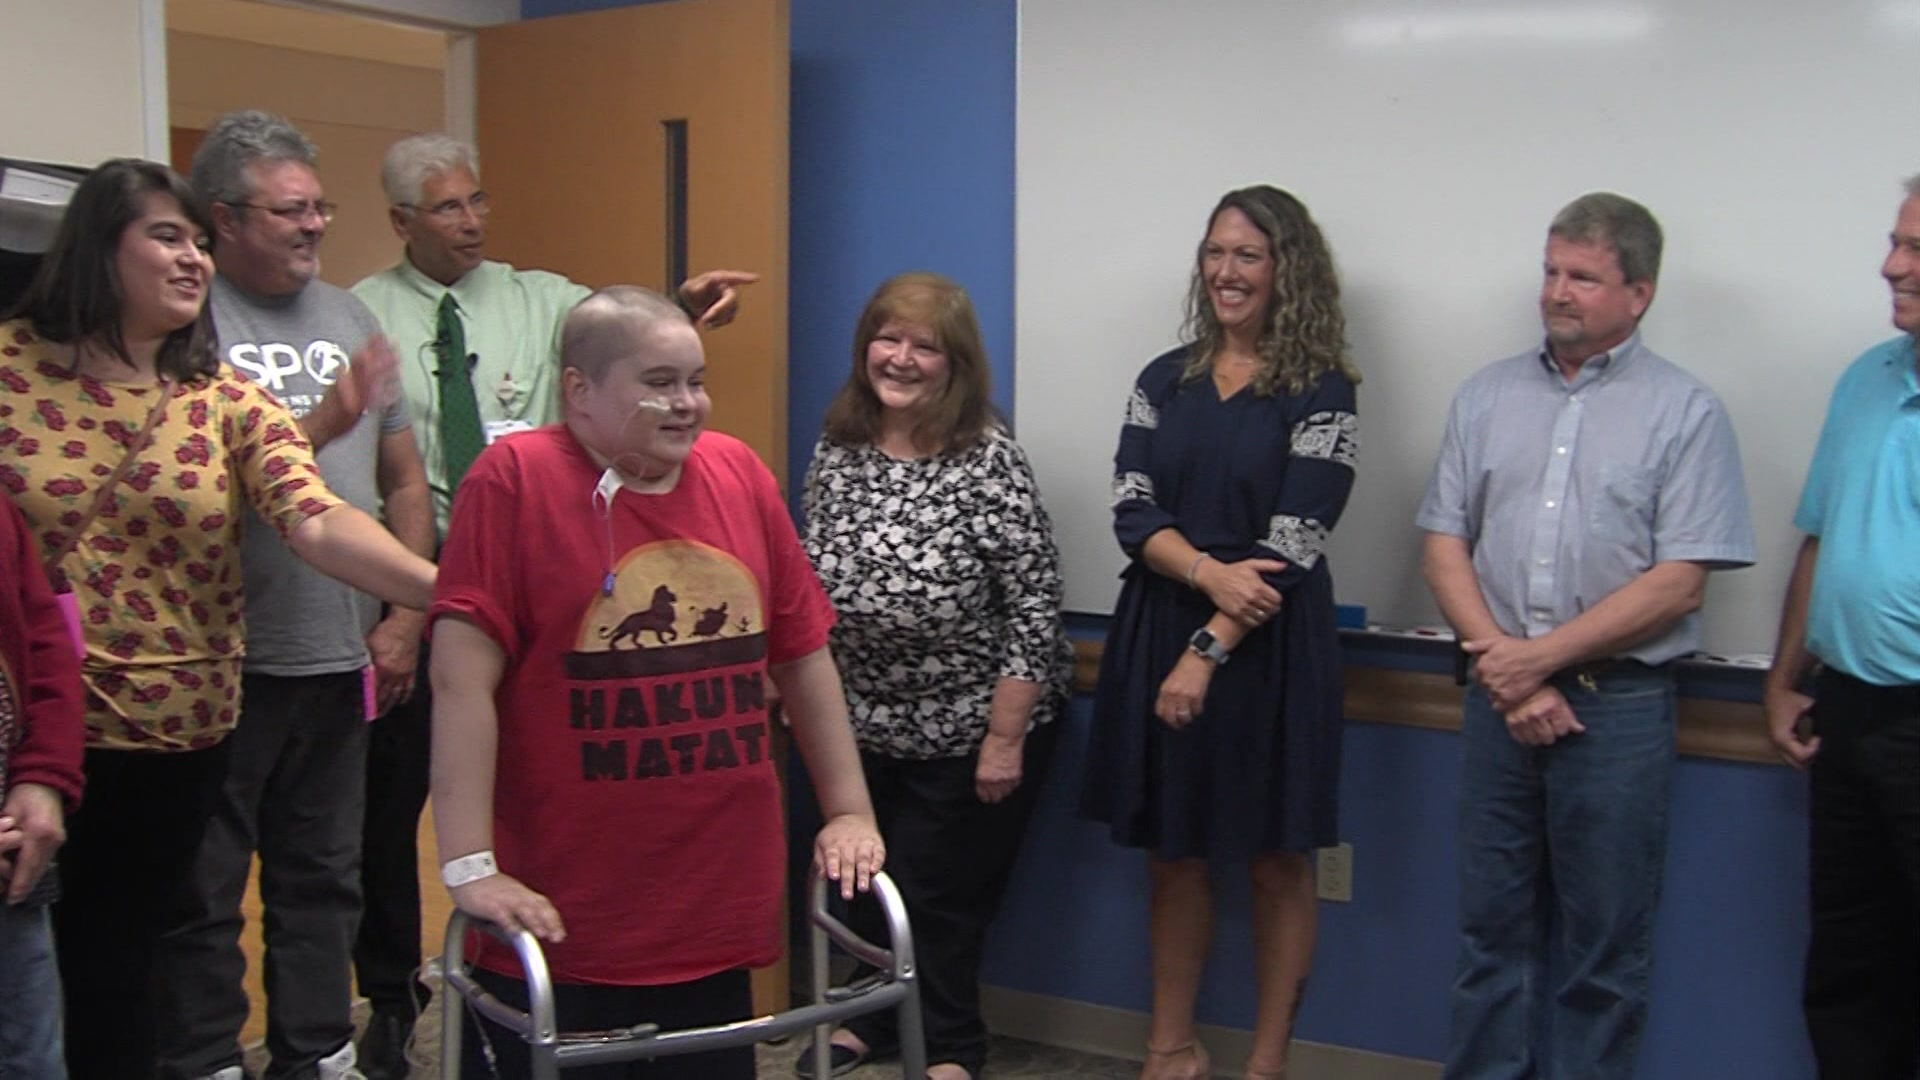 Children's Hospital patient meets donors who helped save his life